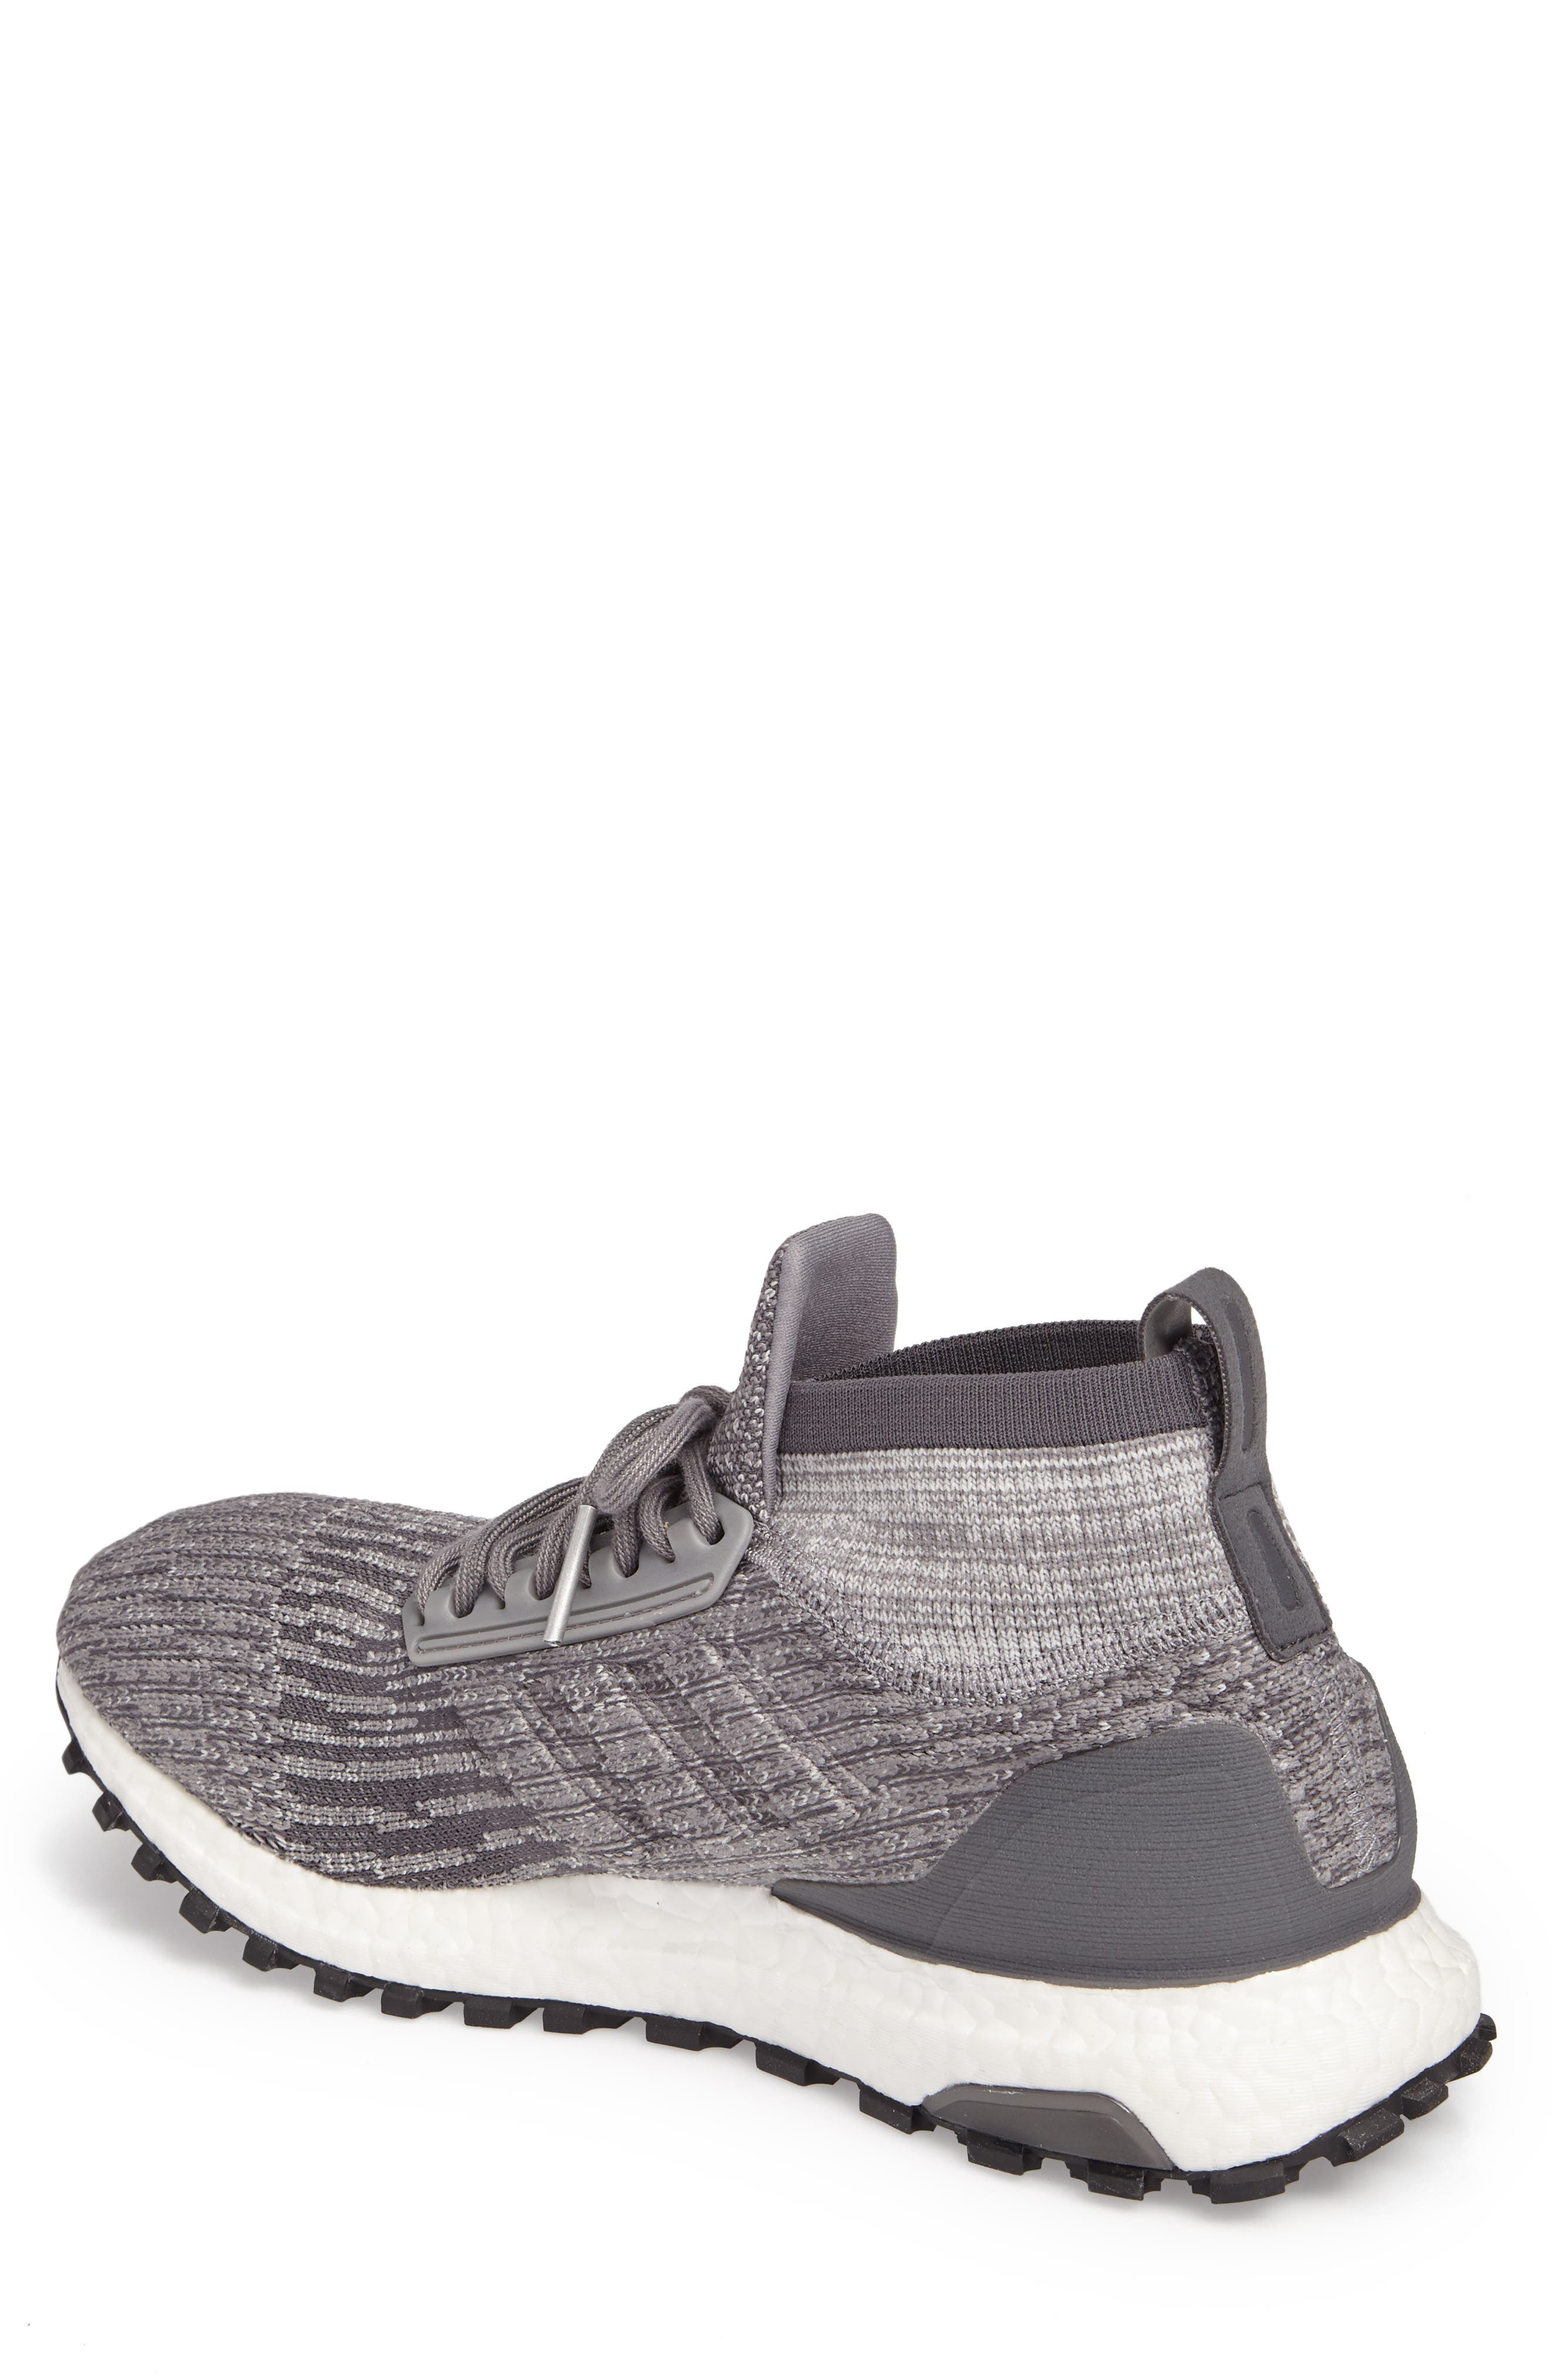 Alternate Image 2  - adidas UltraBOOST All Terrain Water Resistant Running Shoe (Men)